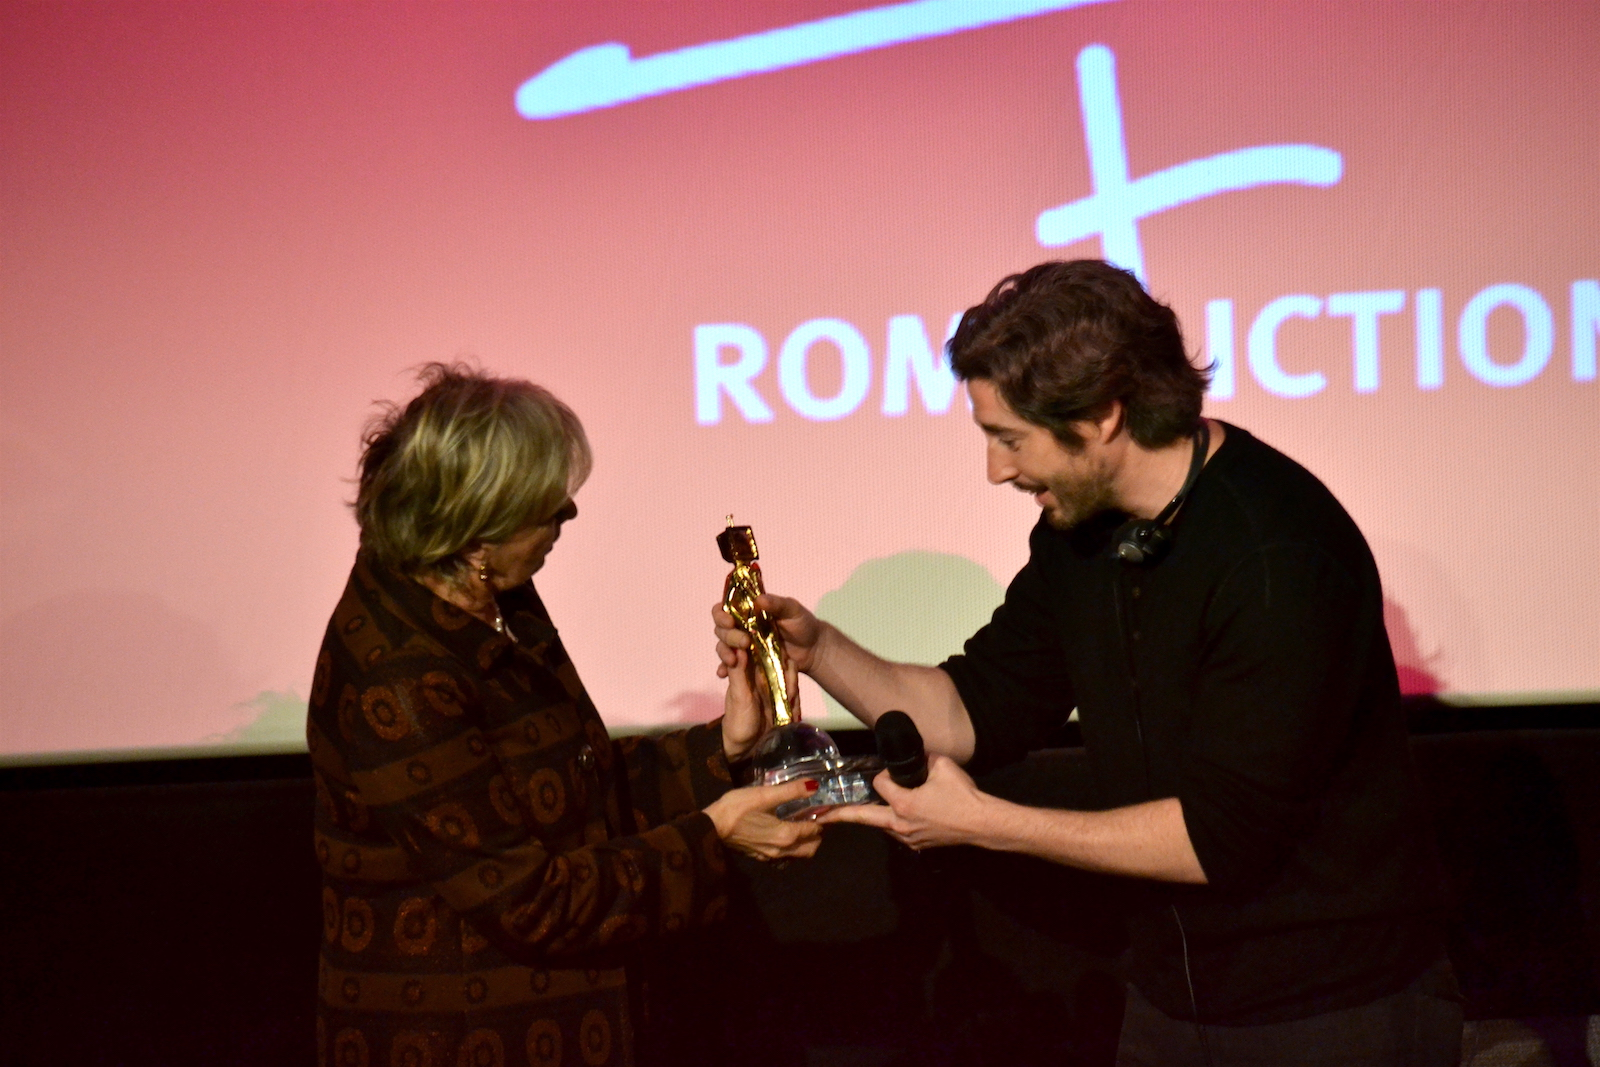 Roma Fiction Fest 2015: Jason Reitman viene premiato con l' Excellence Award